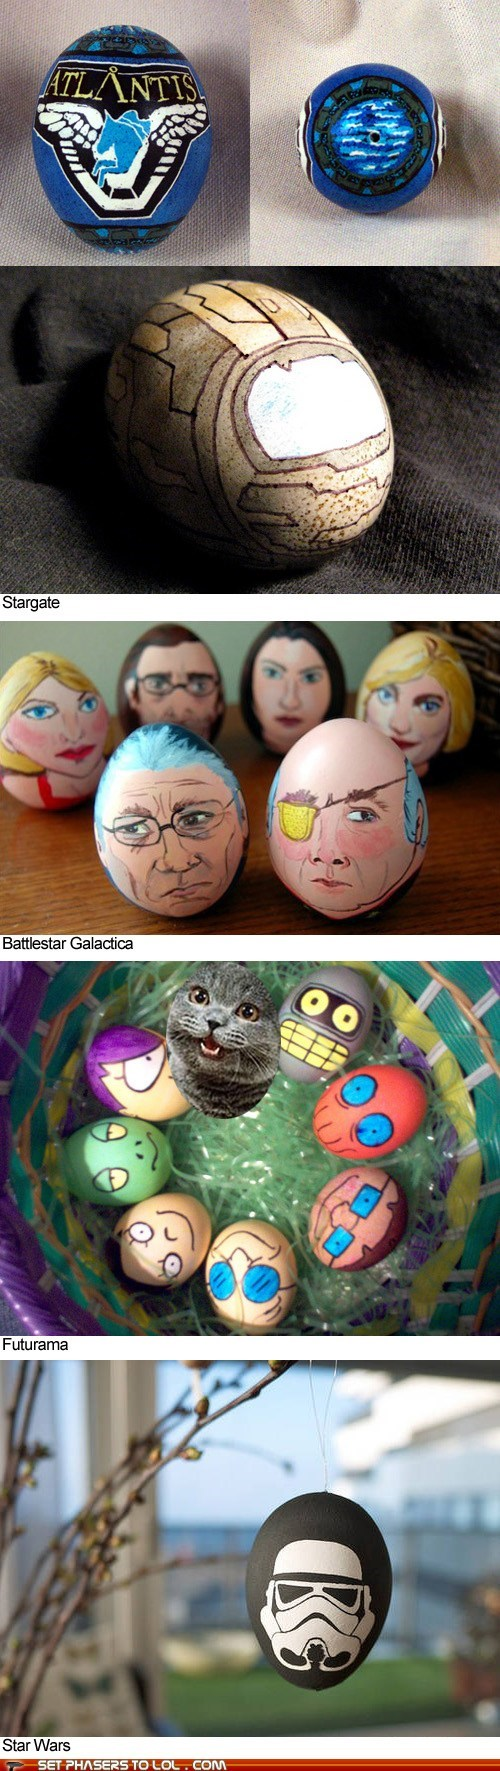 Battlestar Galactica dye easter easter eggs futurama geeky science fiction star wars Stargate